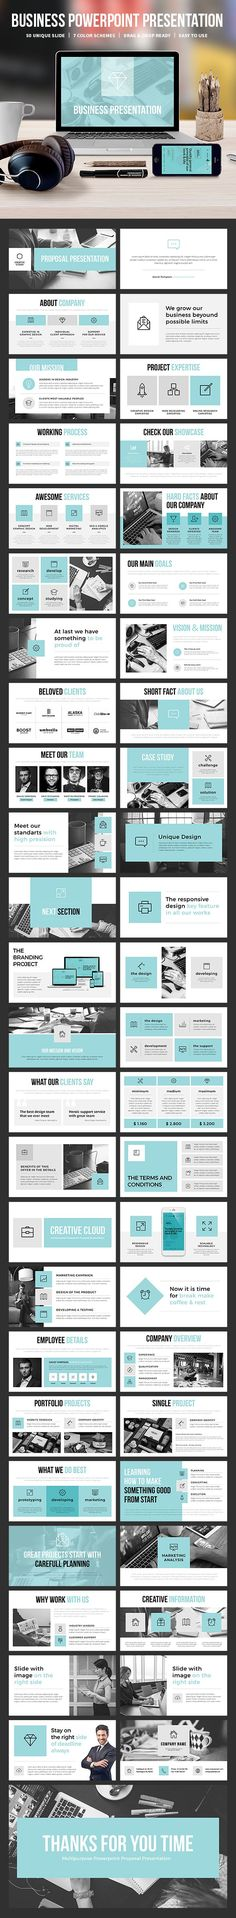 Modern Business Plan PowerPoint Template Business powerpoint - product comparison template word